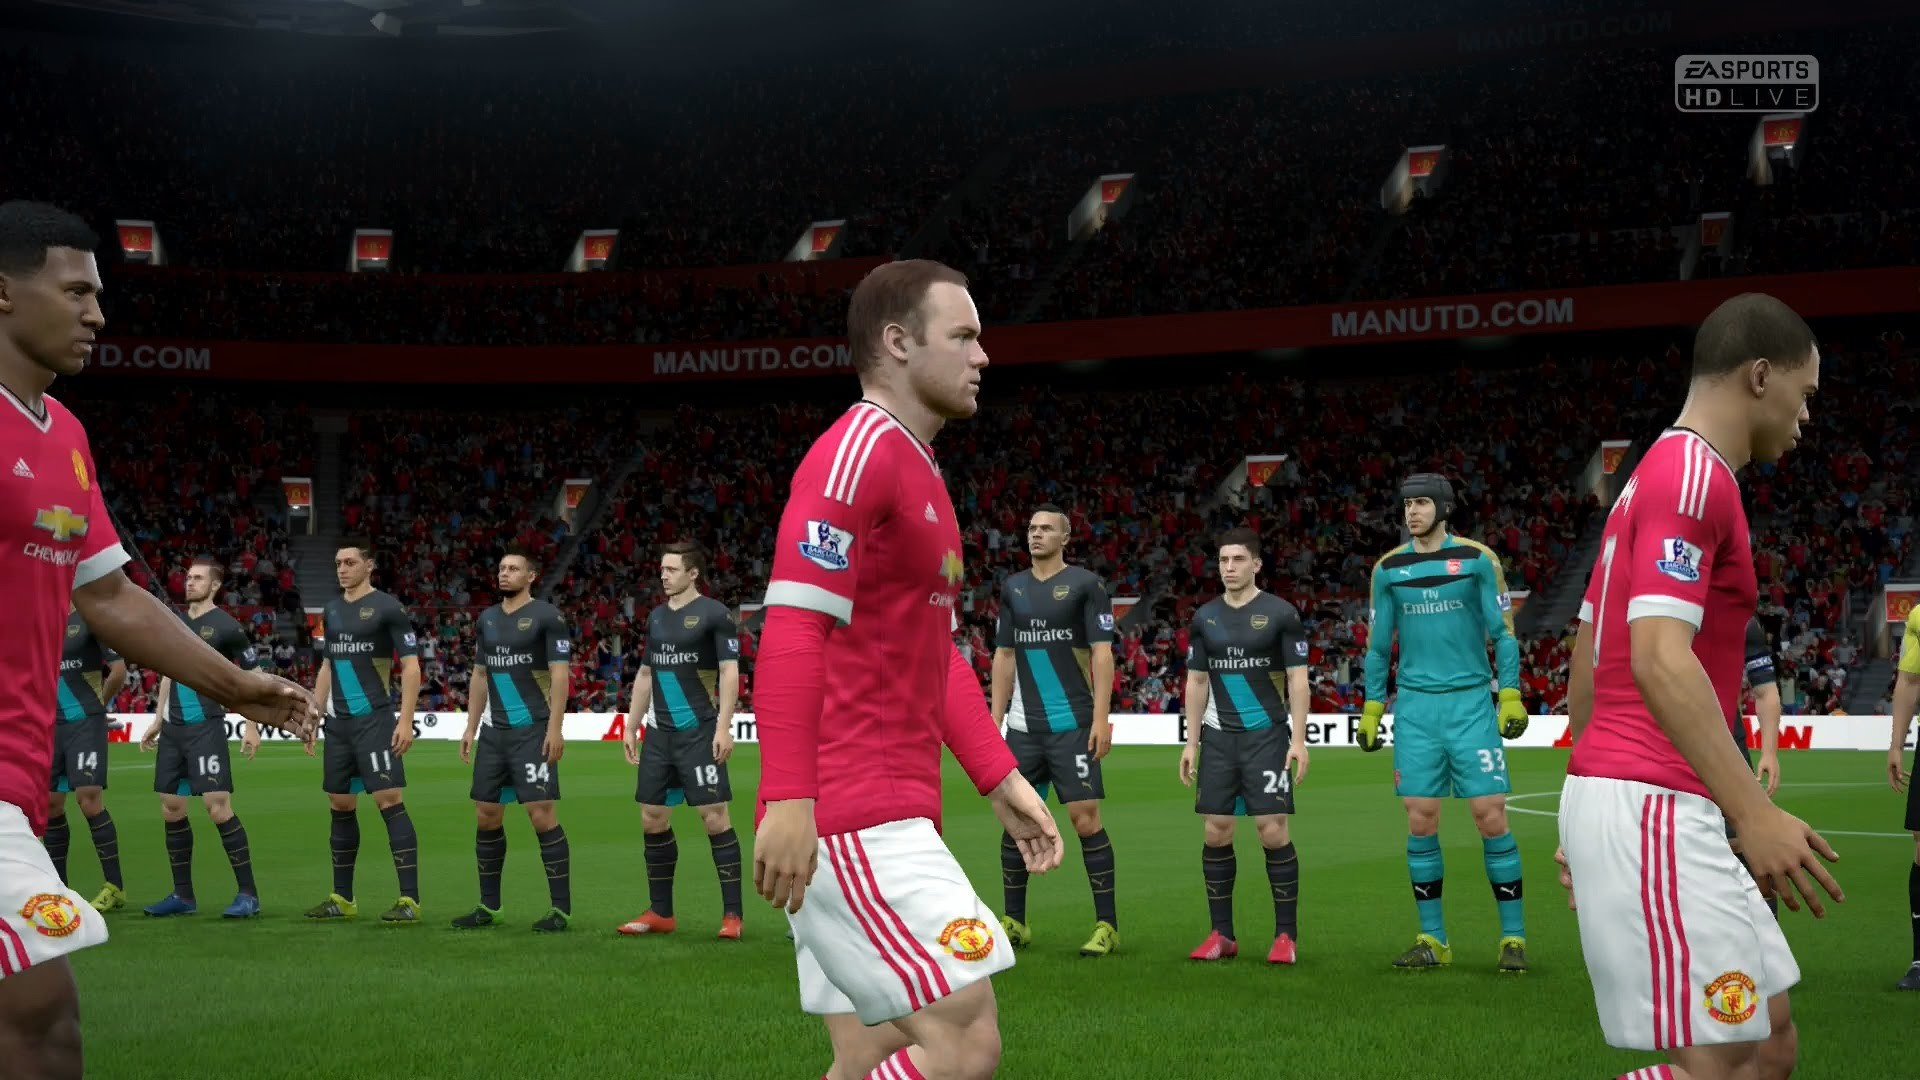 FIFA 16 | Manchester United vs Arsenal – Full Gameplay (PS4/Xbox One) –  YouTube